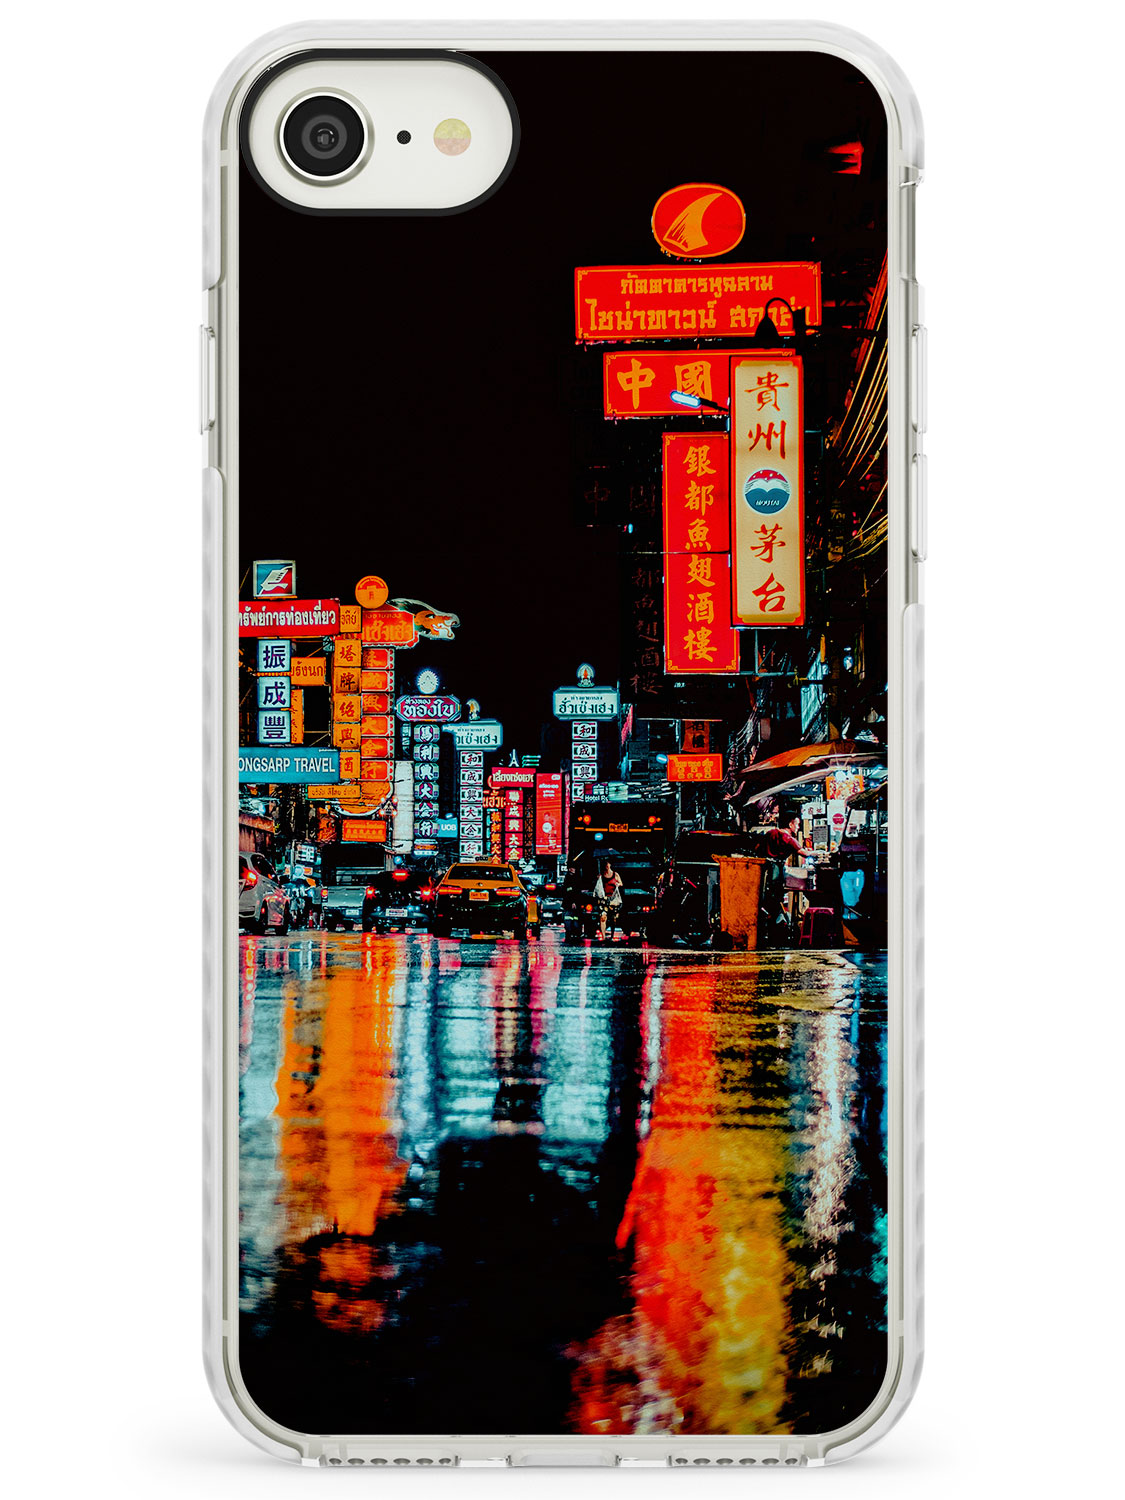 Colourful Reflections - Neon Cities Photographs iPhone Case by Case Warehouse ®